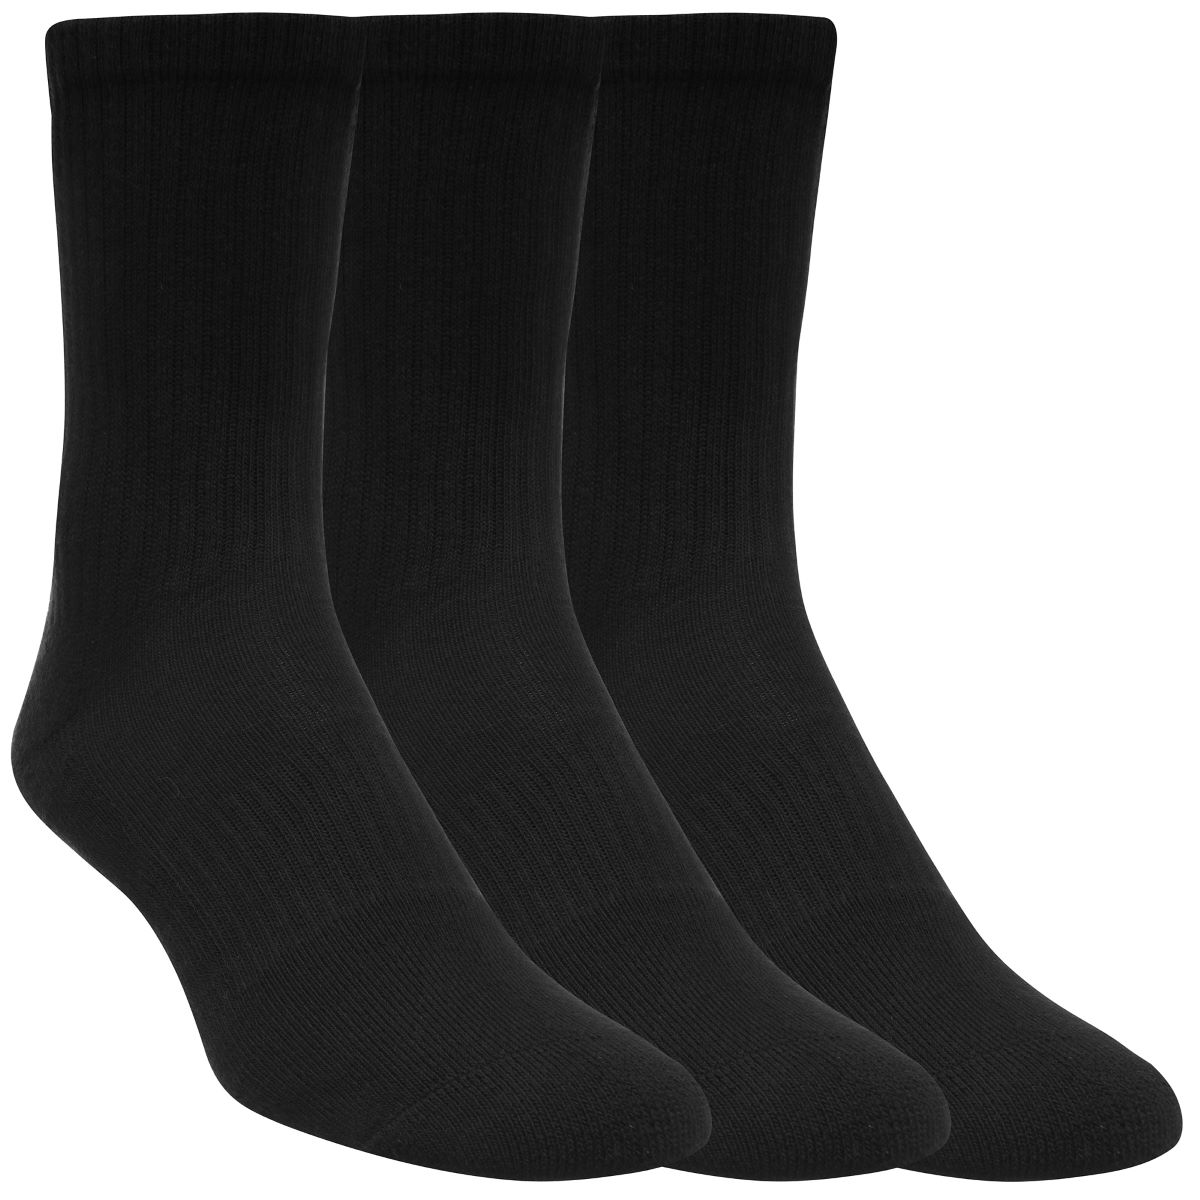 Chaussettes Under Armour Charged Cotton 2.0 (trois paires) - M Noir